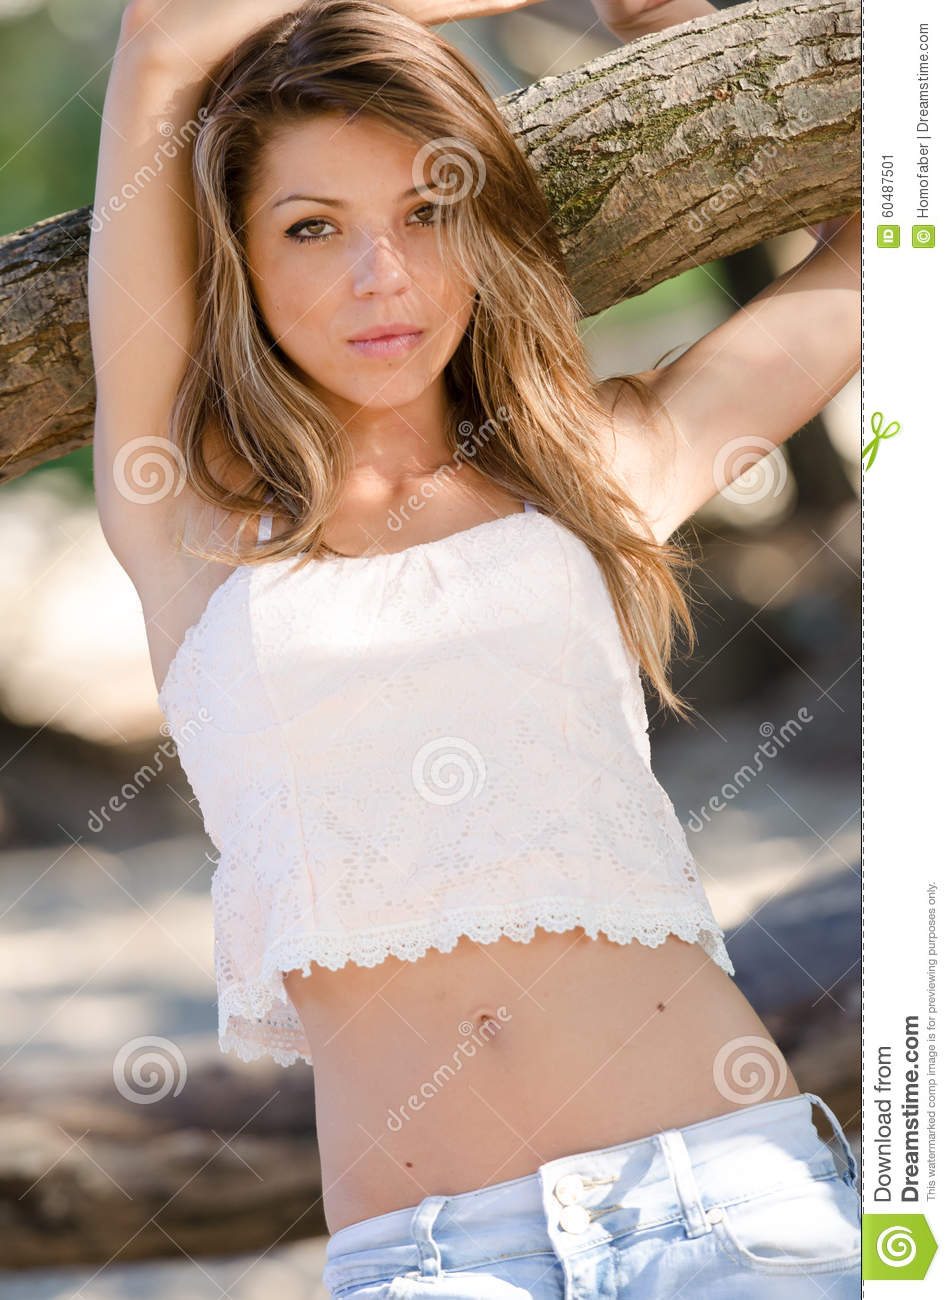 Nostalgic moments of a beautiful girl as she rests on a tree trunk